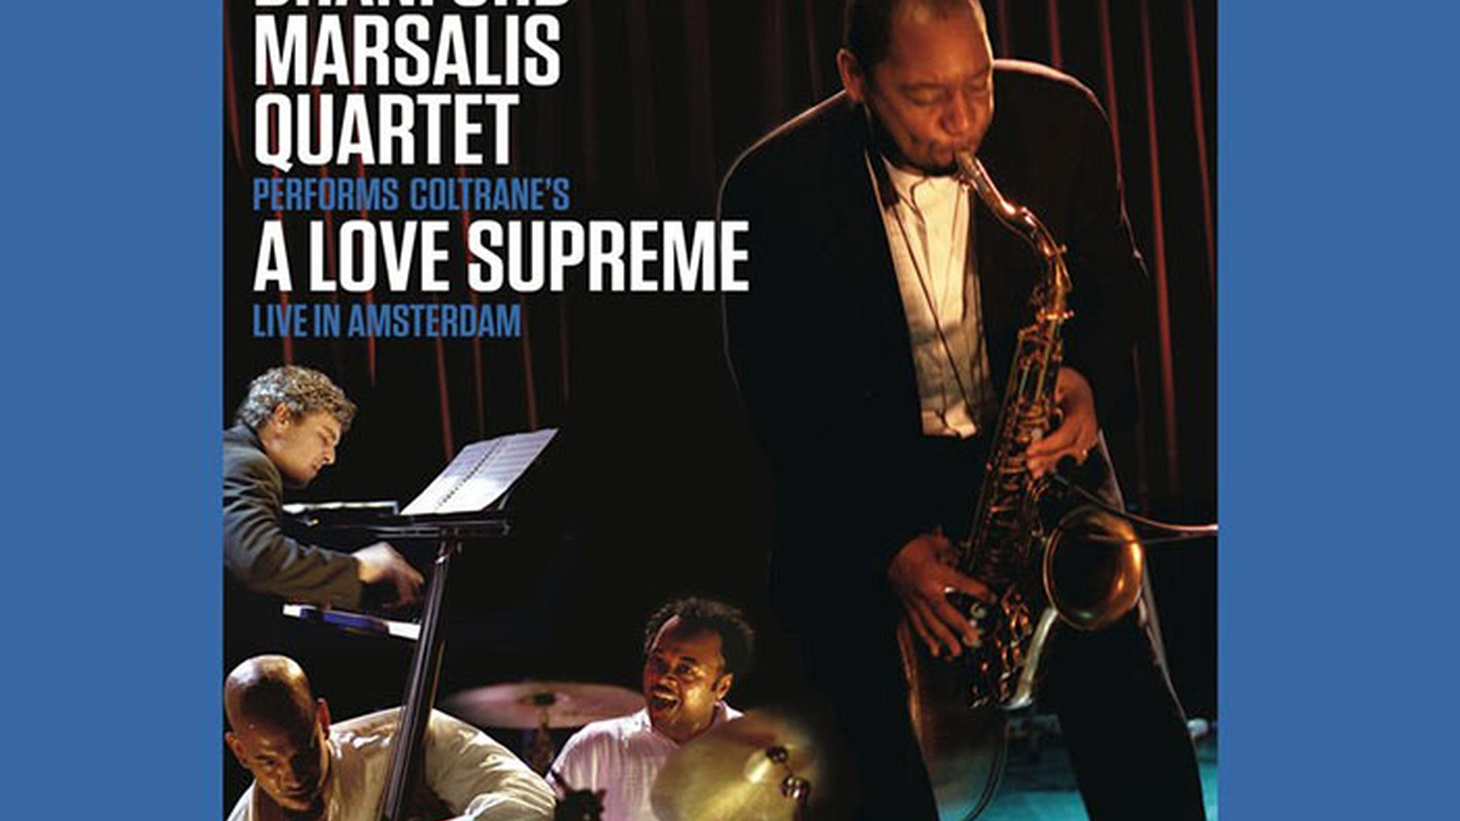 This week, Tom showcases John Coltrane's 1964 masterpiece, A Love Supreme, followed by a remarkable tribute and celebration of this classic by Branford Marsalis's Band, recorded live in Amsterdam in 2003, but only just now released for the first time.